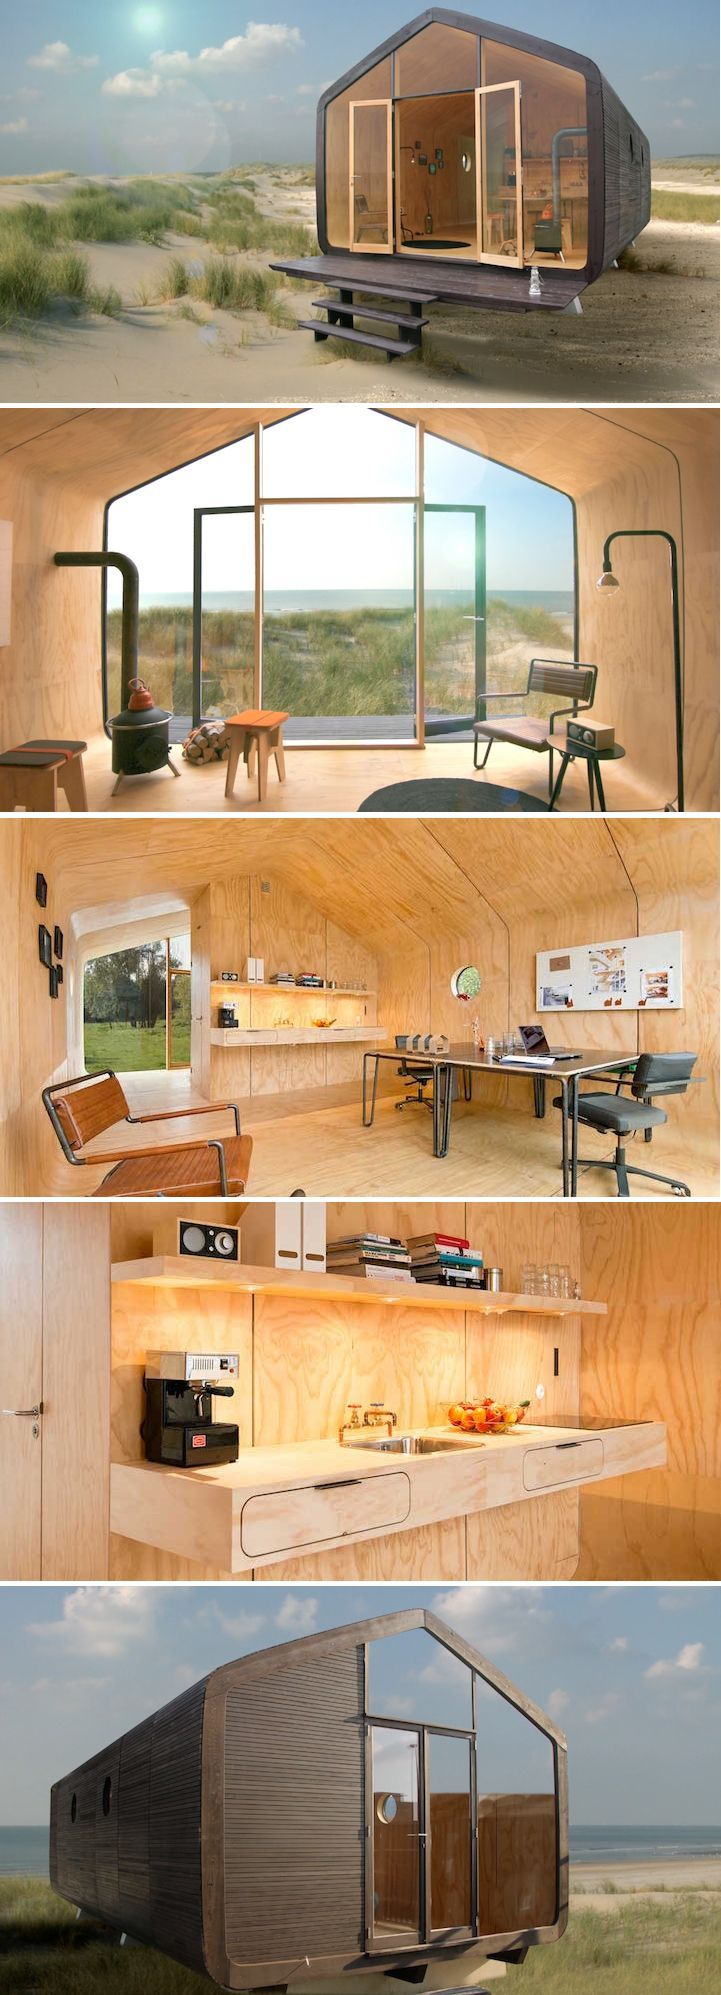 View toward kitchen the alpha tiny home by new frontier tiny homes - Designers Use Recycled Cardboard To Create Eco Friendly Modular Homes